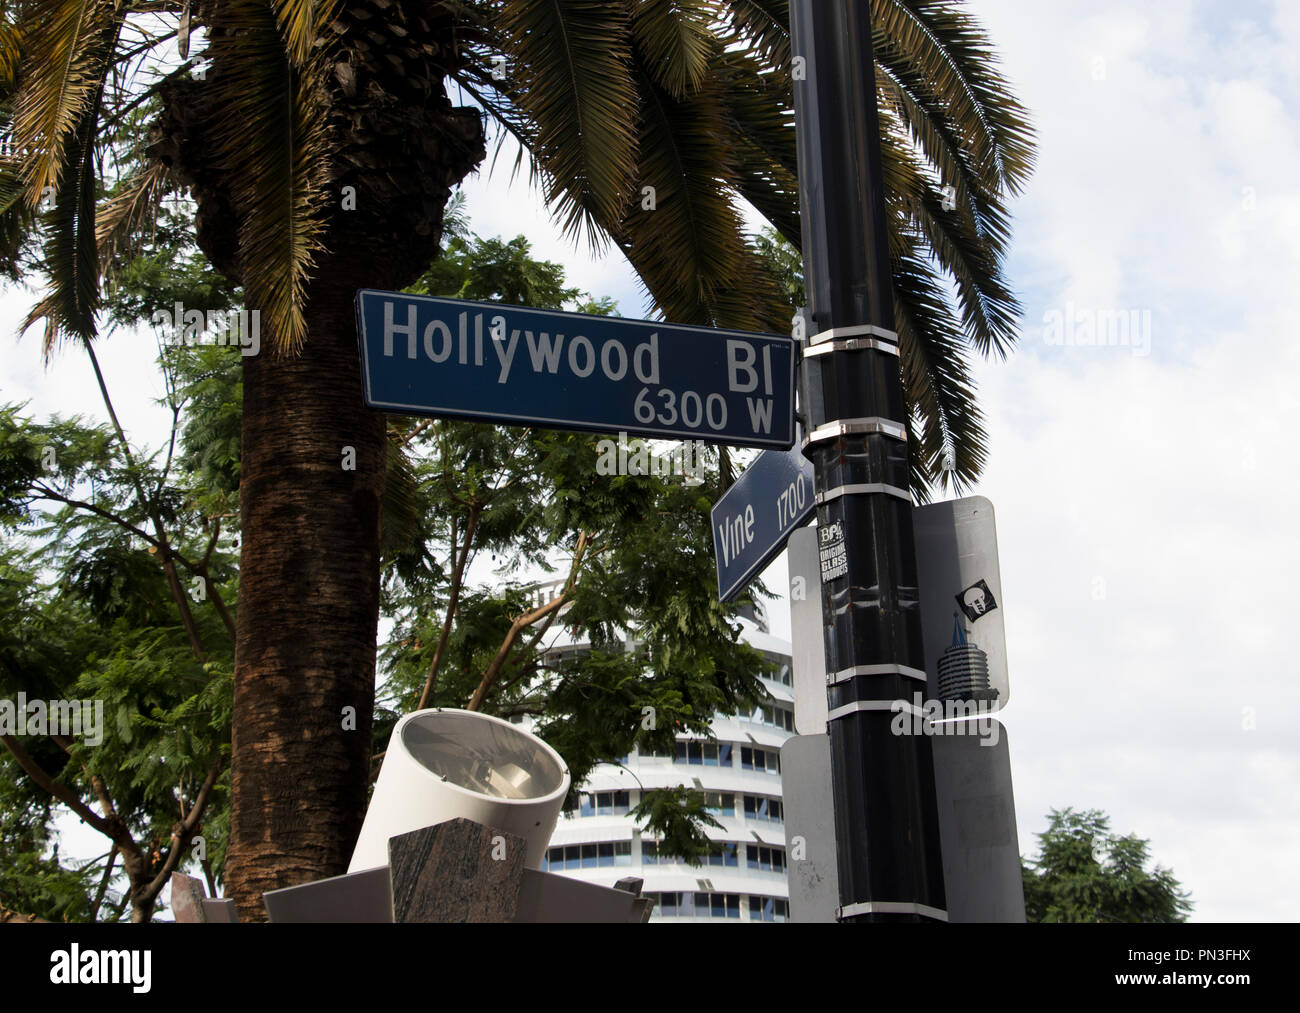 Hollywood boulevard street sign with palm trees in the background. - Stock Image